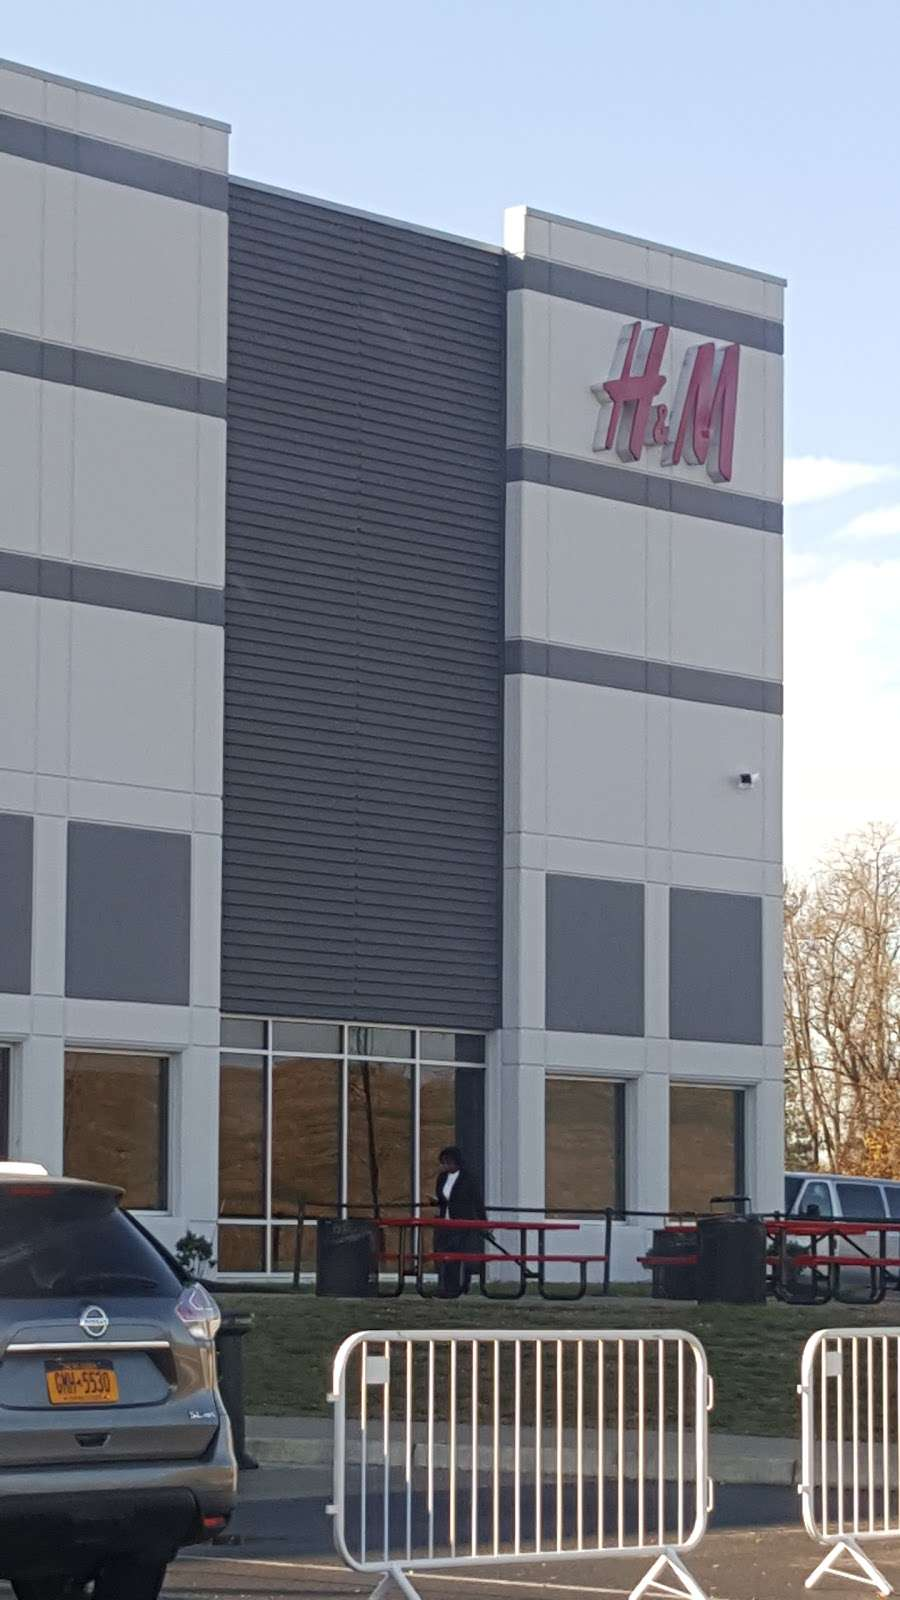 H&M Logistics - clothing store  | Photo 1 of 9 | Address: 1600 River Rd, Burlington, NJ 08016, USA | Phone: (866) 246-6453